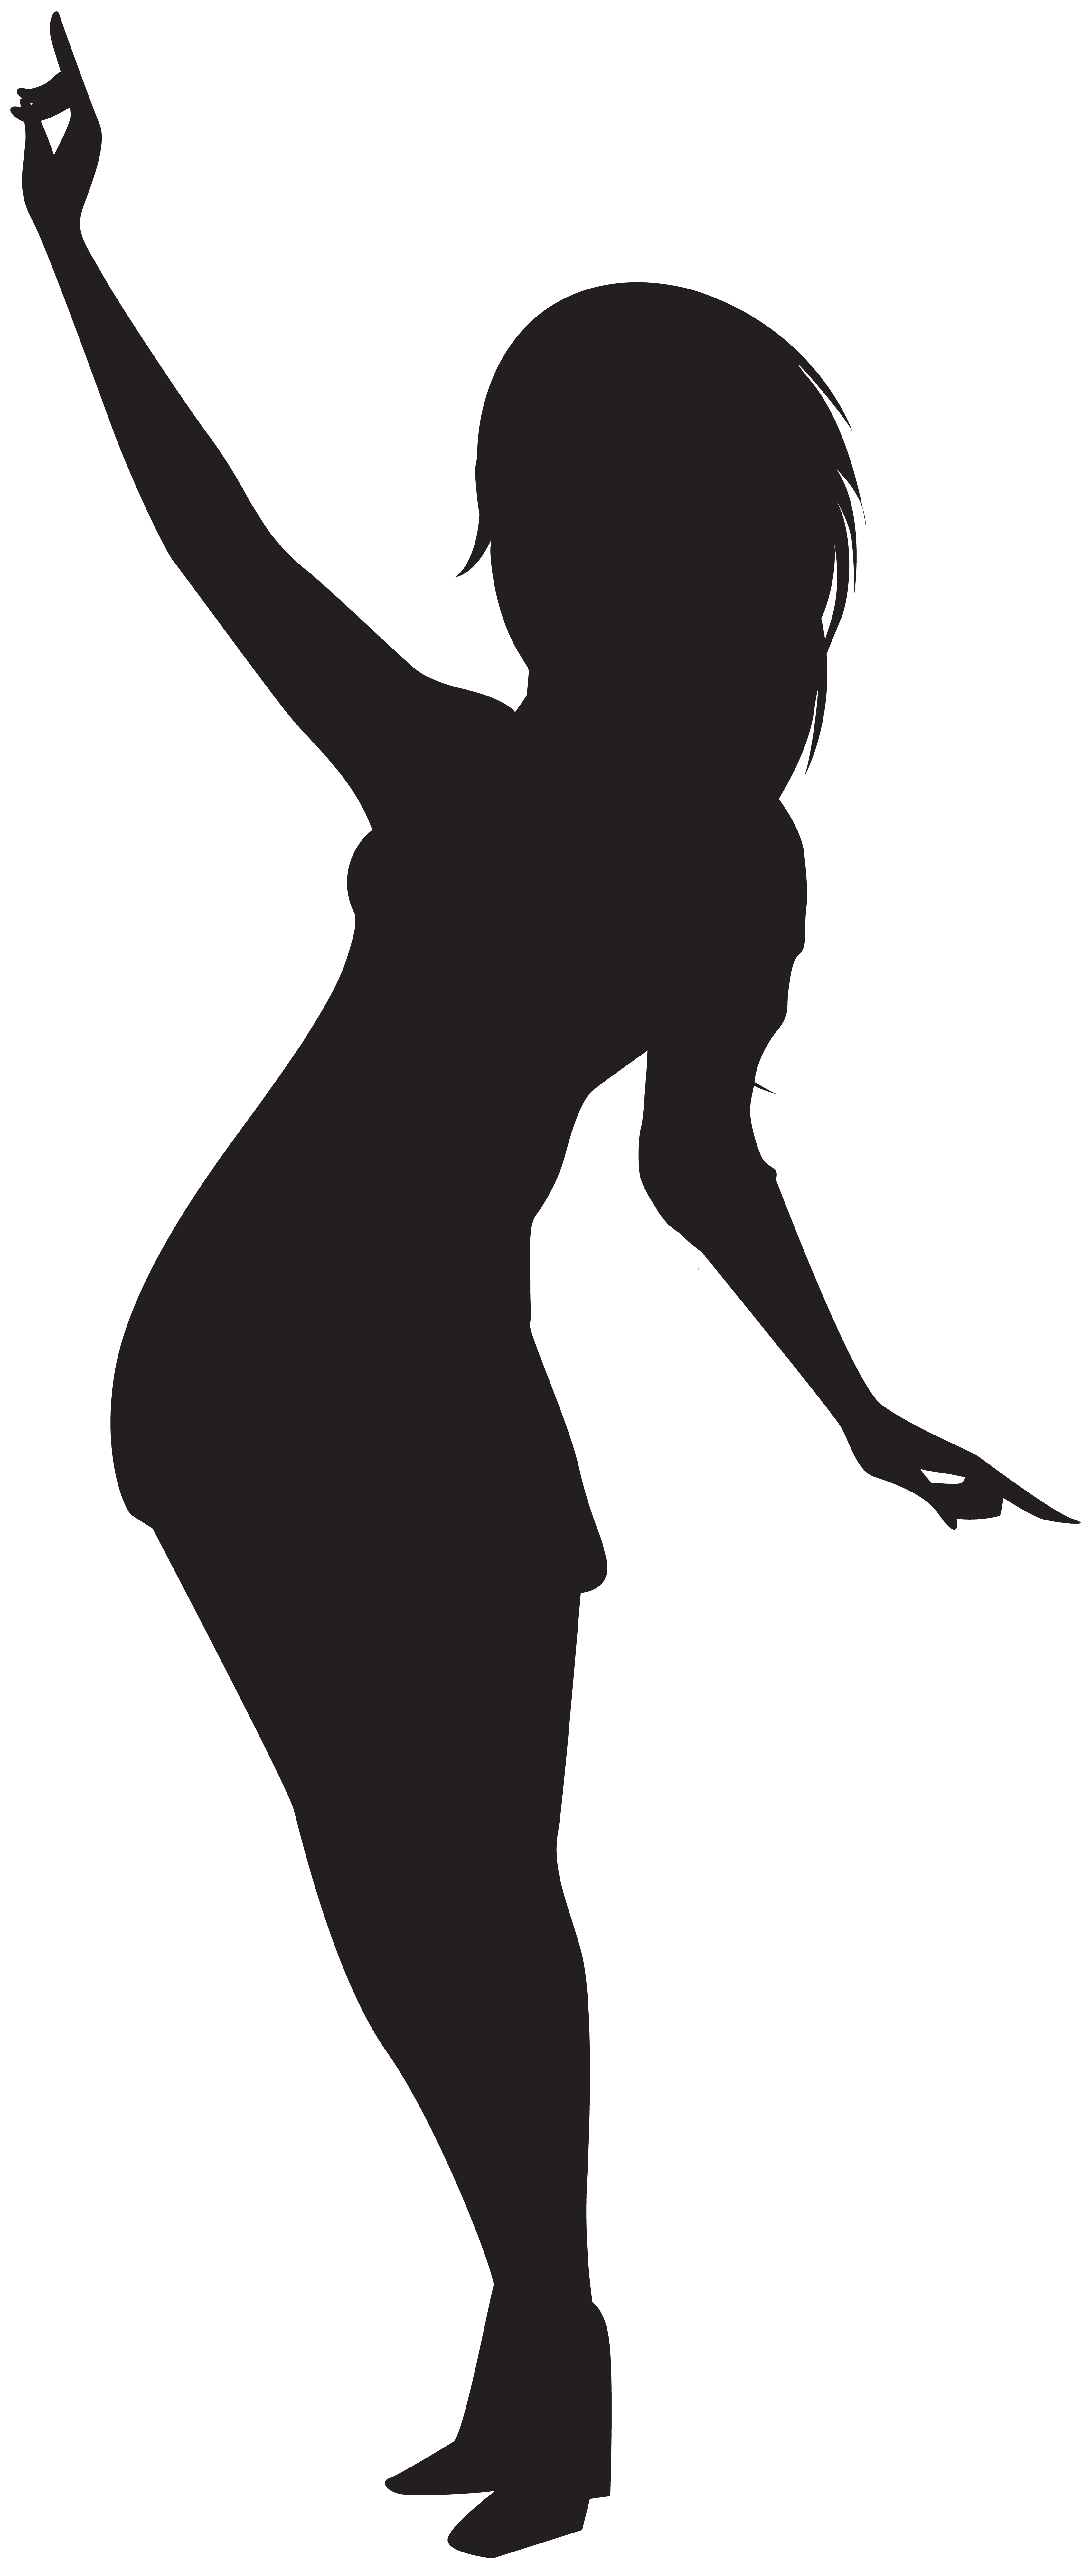 Dancing girl silhouette png. Lady clipart dance